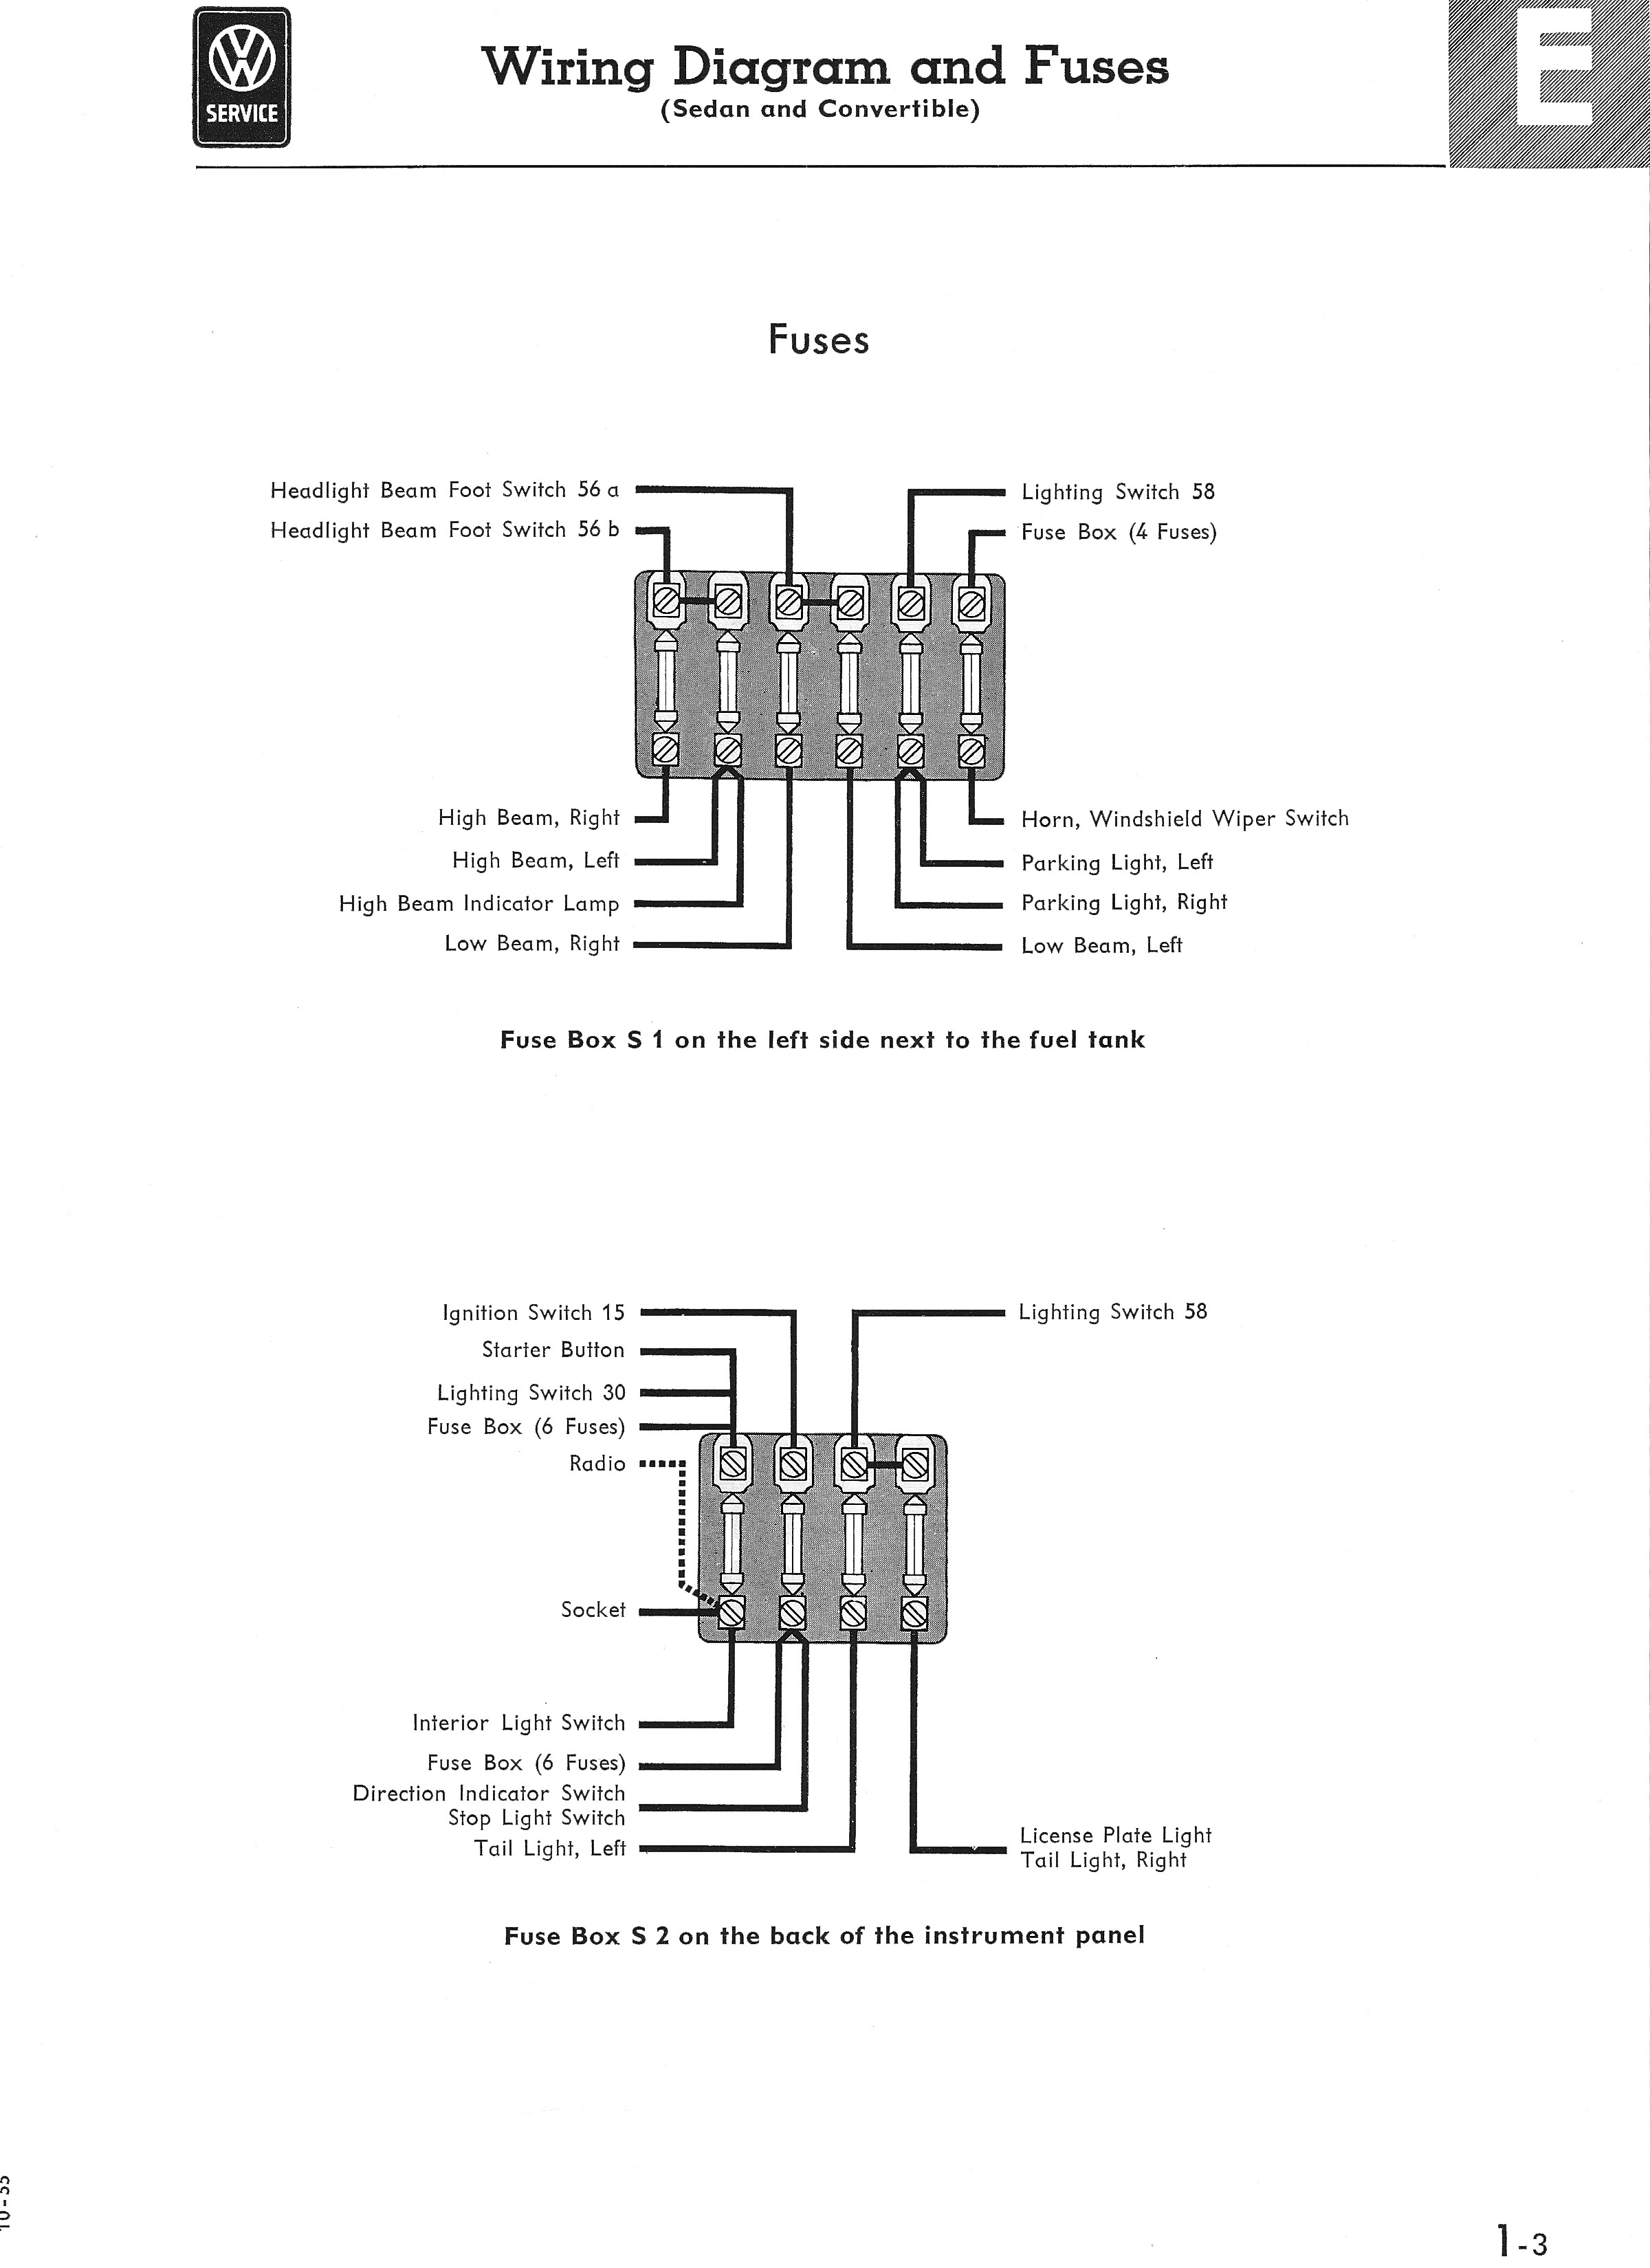 Type 1 Wiring Diagrams 1956 Chevy Ignition Diagram